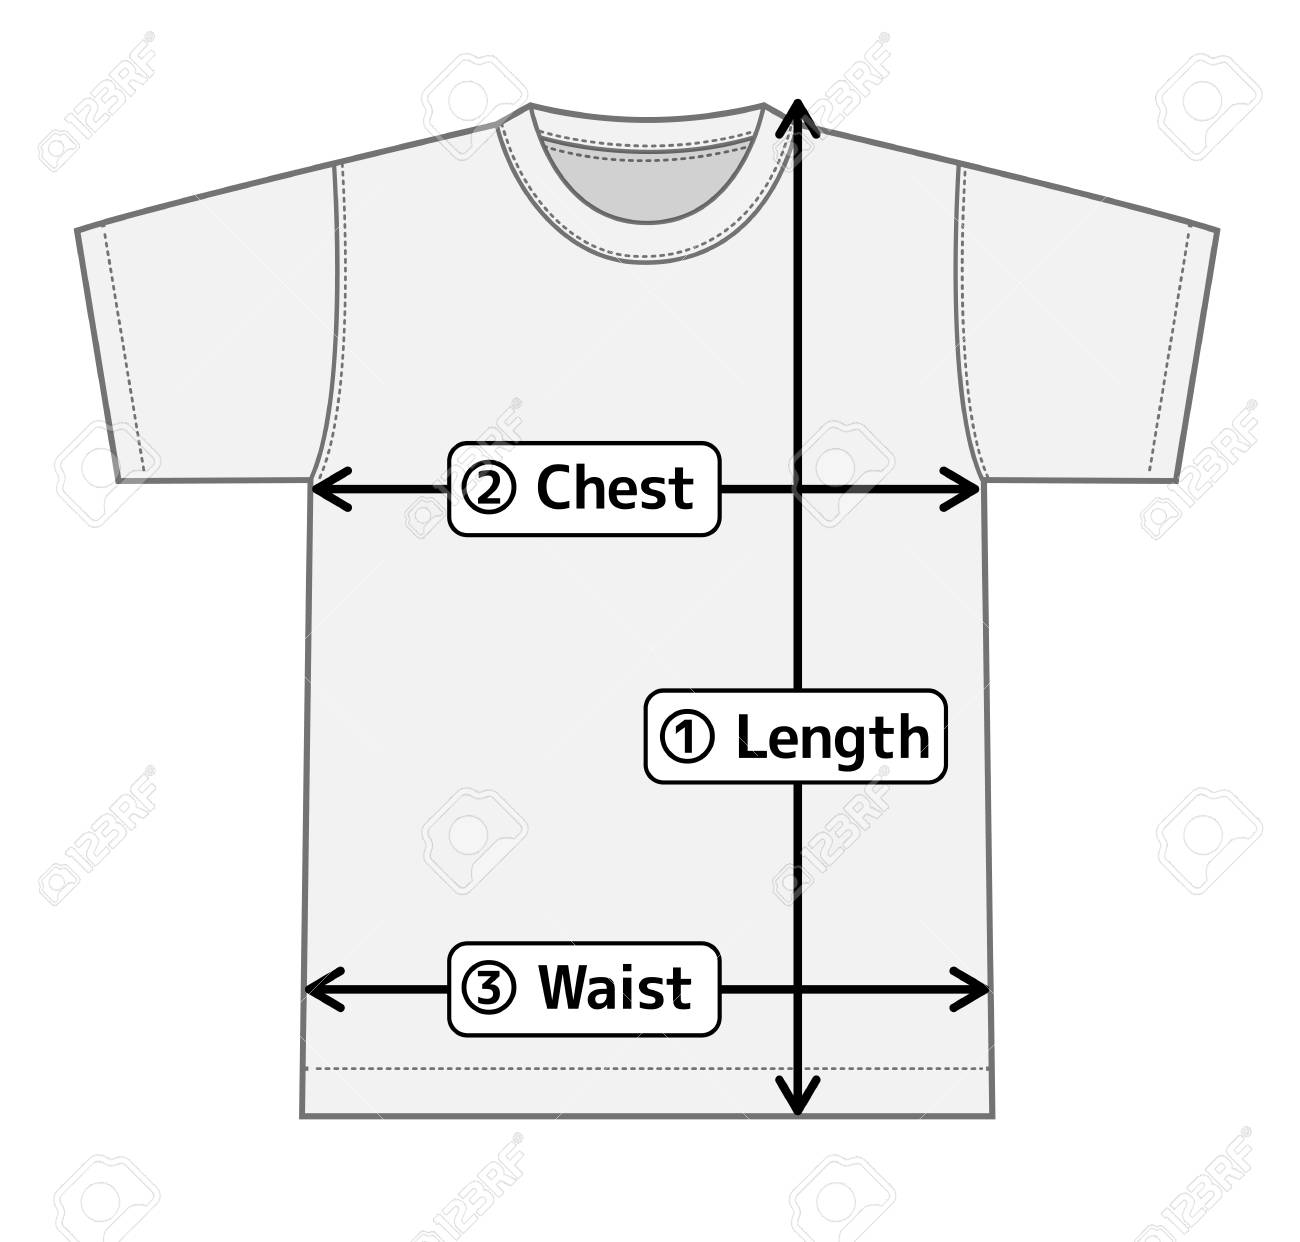 Shirt Diagram Vector Worksheet And Wiring Force T Illustration For Size Chart Royalty Free Cliparts Vectors Rh 123rf Com Biology Basic In Physics